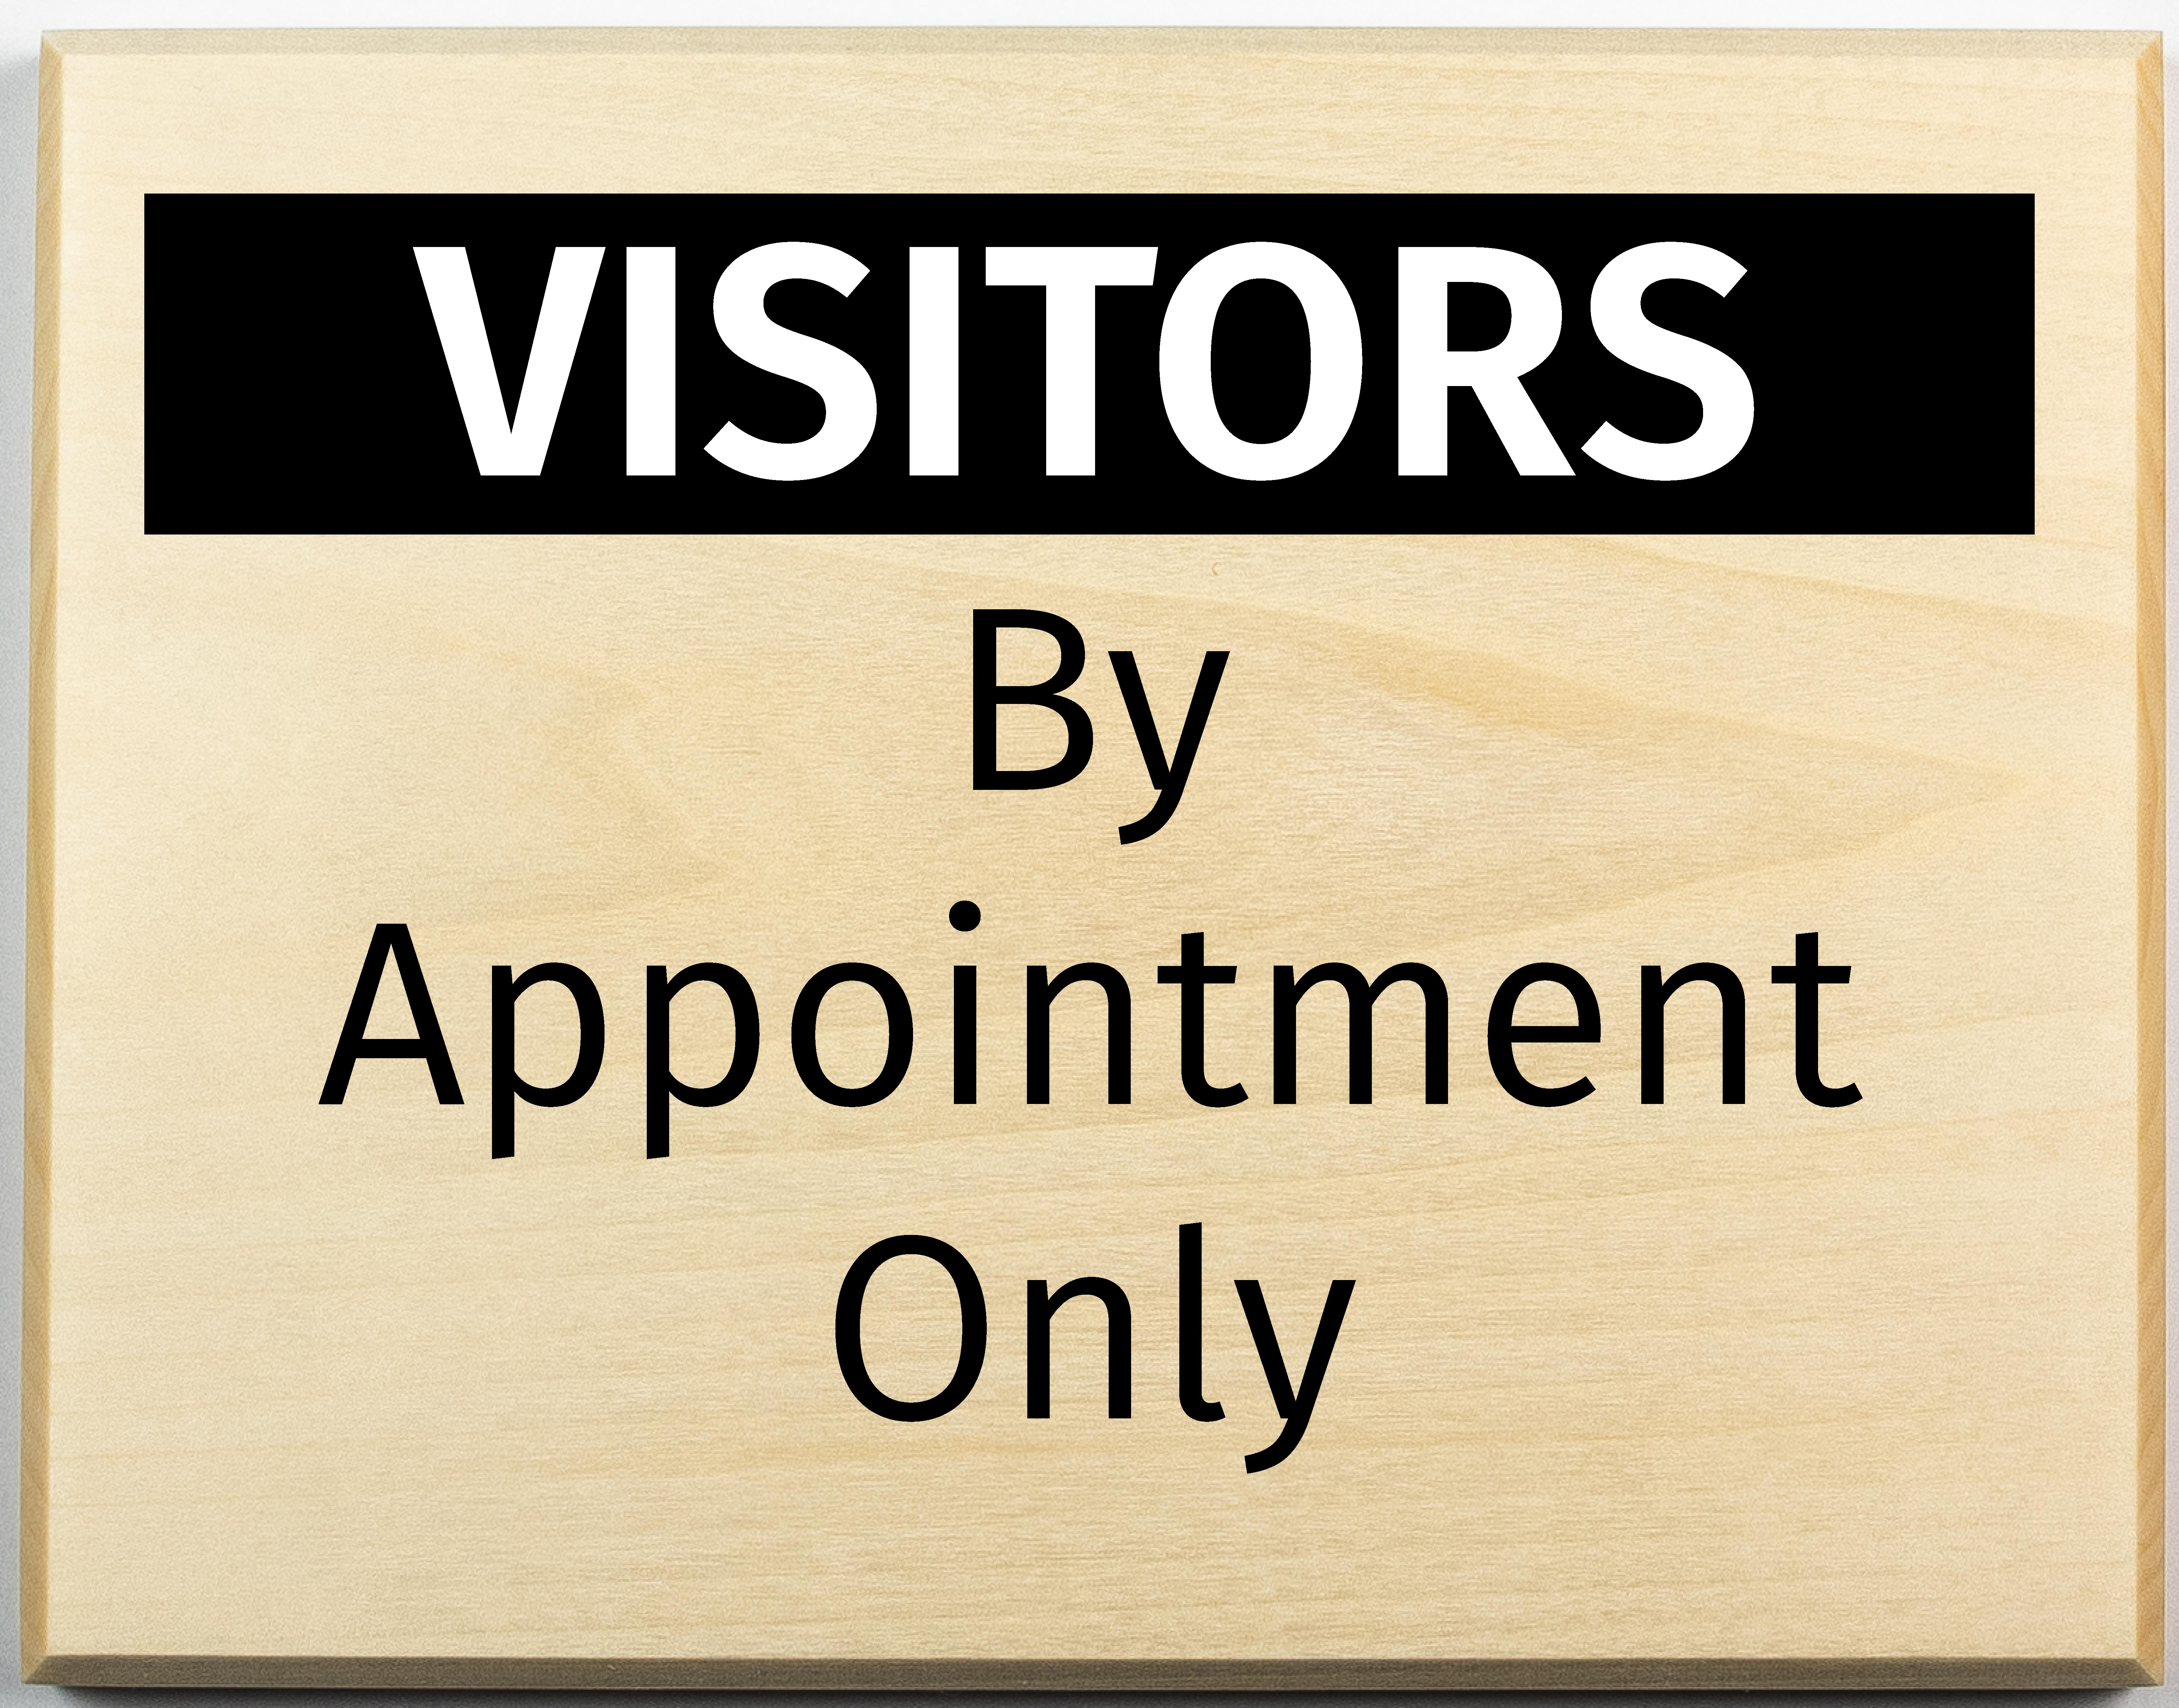 By appointment only sign